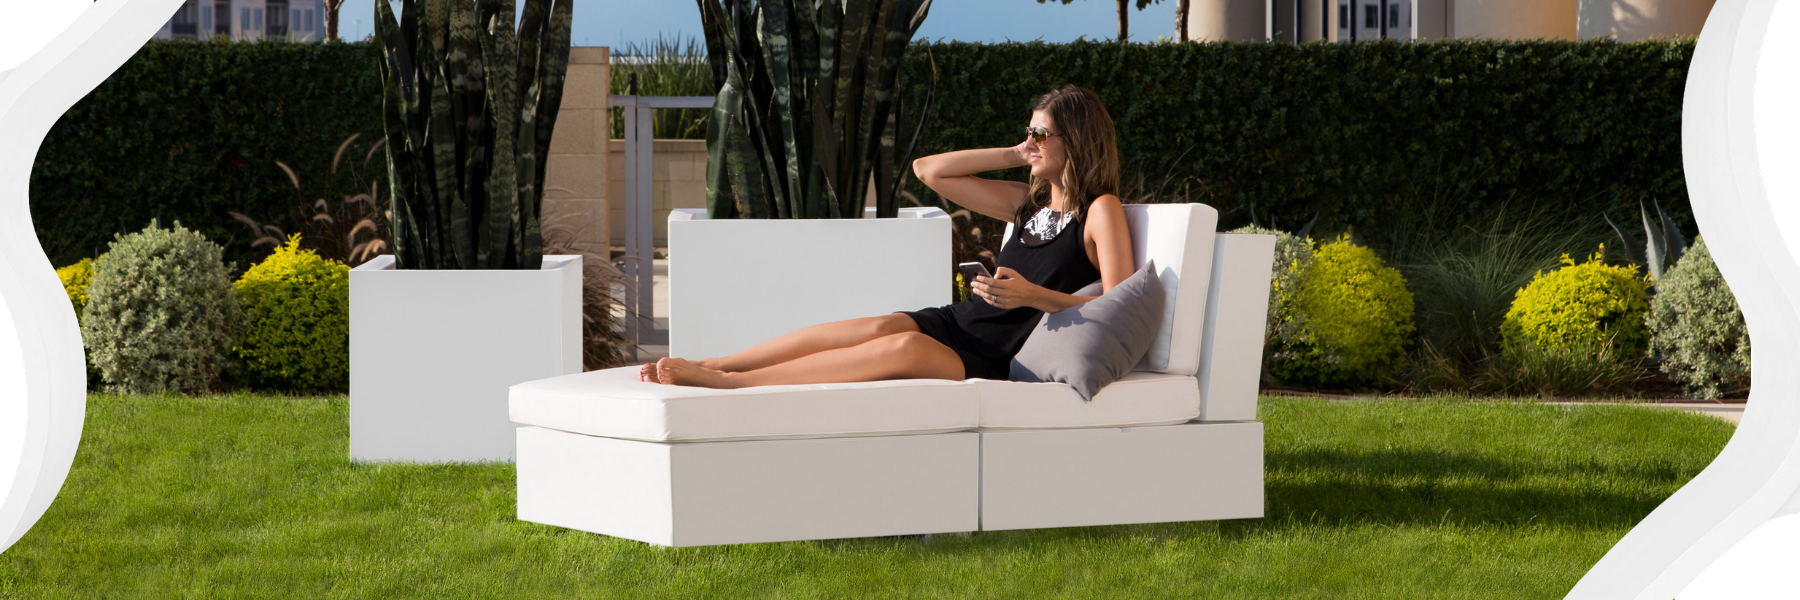 ledge-lounger-sectional-on-lawn.png